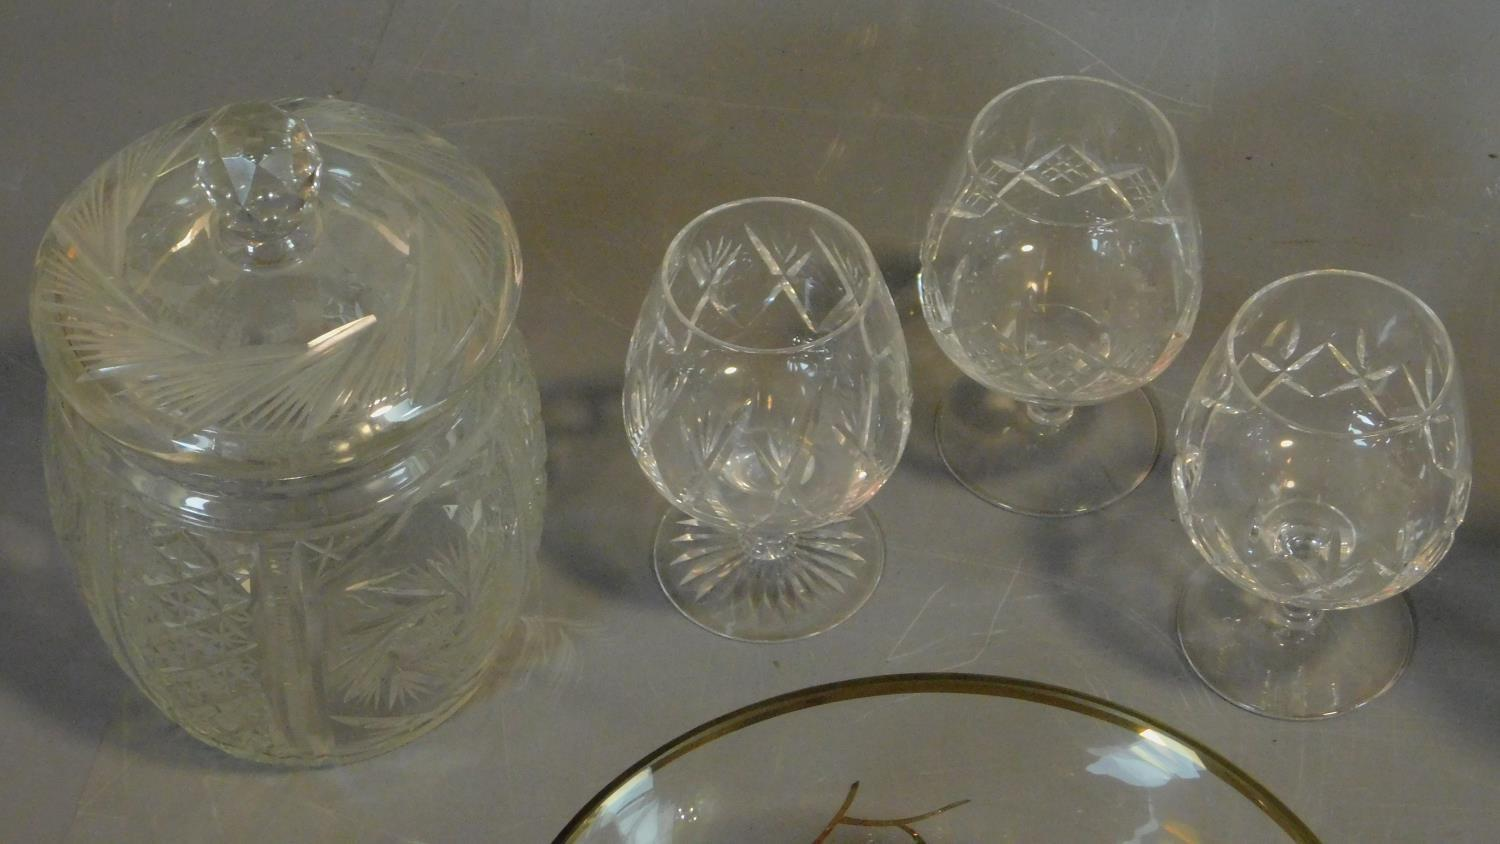 A vintage painted decorated dessert set and a collection of miscellaneous glass items. - Image 5 of 7